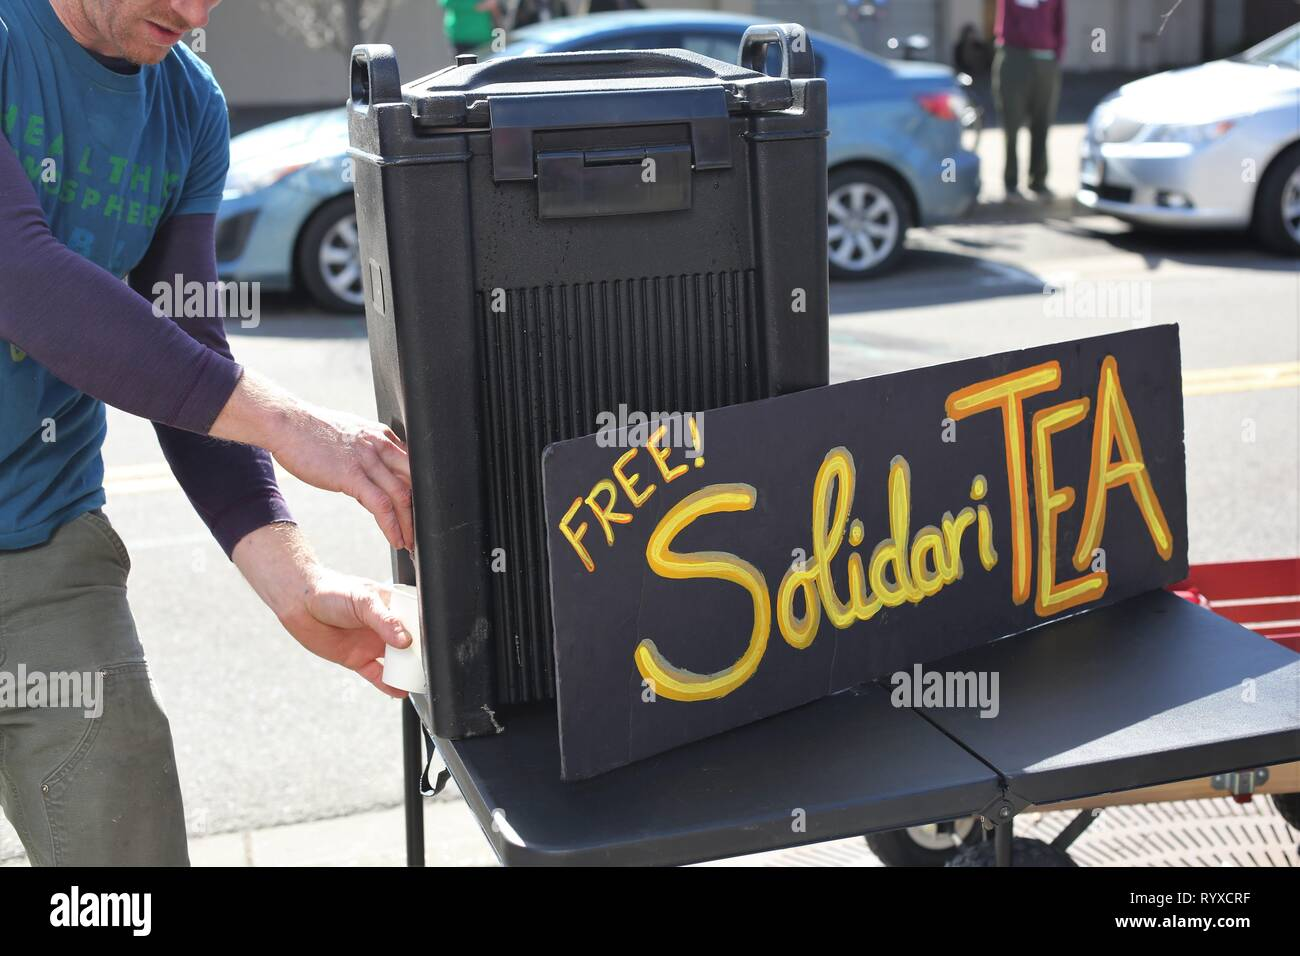 Free 'SolidariTea' at the Global Climate Strike rally in Eugene, Oregon, USA. - Stock Image